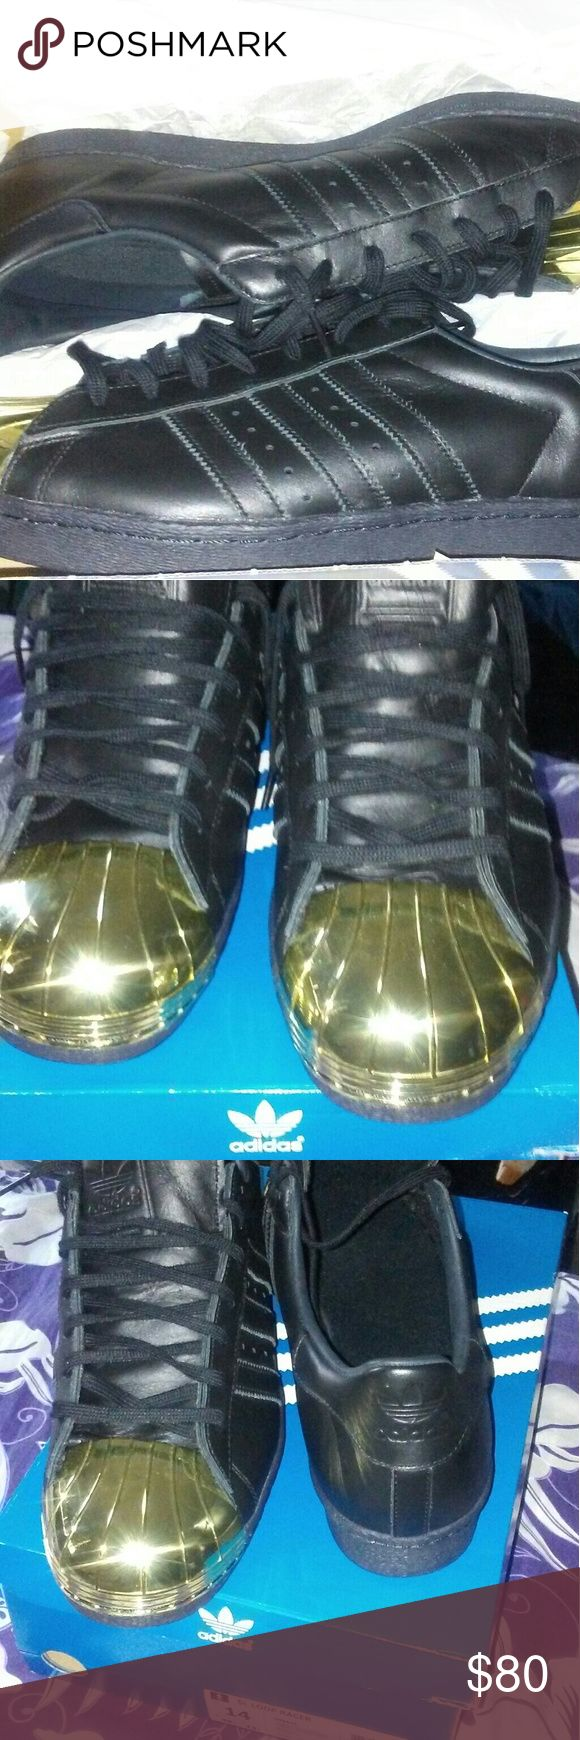 Adidas superstars I have a pair of all black Adidas Superstars with Gold Shell toes in men size 14.I wore these for a few hours and that was it because they started hurting from my feet being too wide.So these are in excellent conditicon.These were giving to me as a gift.Theres no holes rips or anything coming apart and no scratches on the Gold toe parts.If you are interested hmu with questions or offers.im open to offers. Thanks for checking out my closet and God bless! ANY TRADES? adidas…